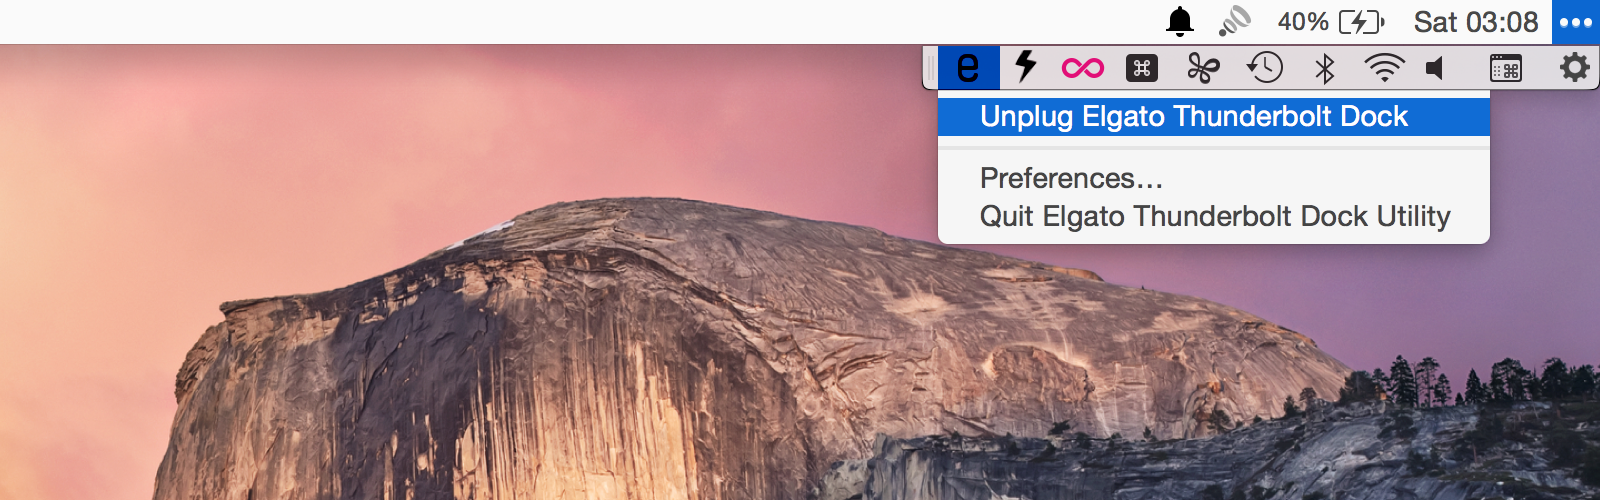 Elgato Thunderbolt 2 Dock menu bar app